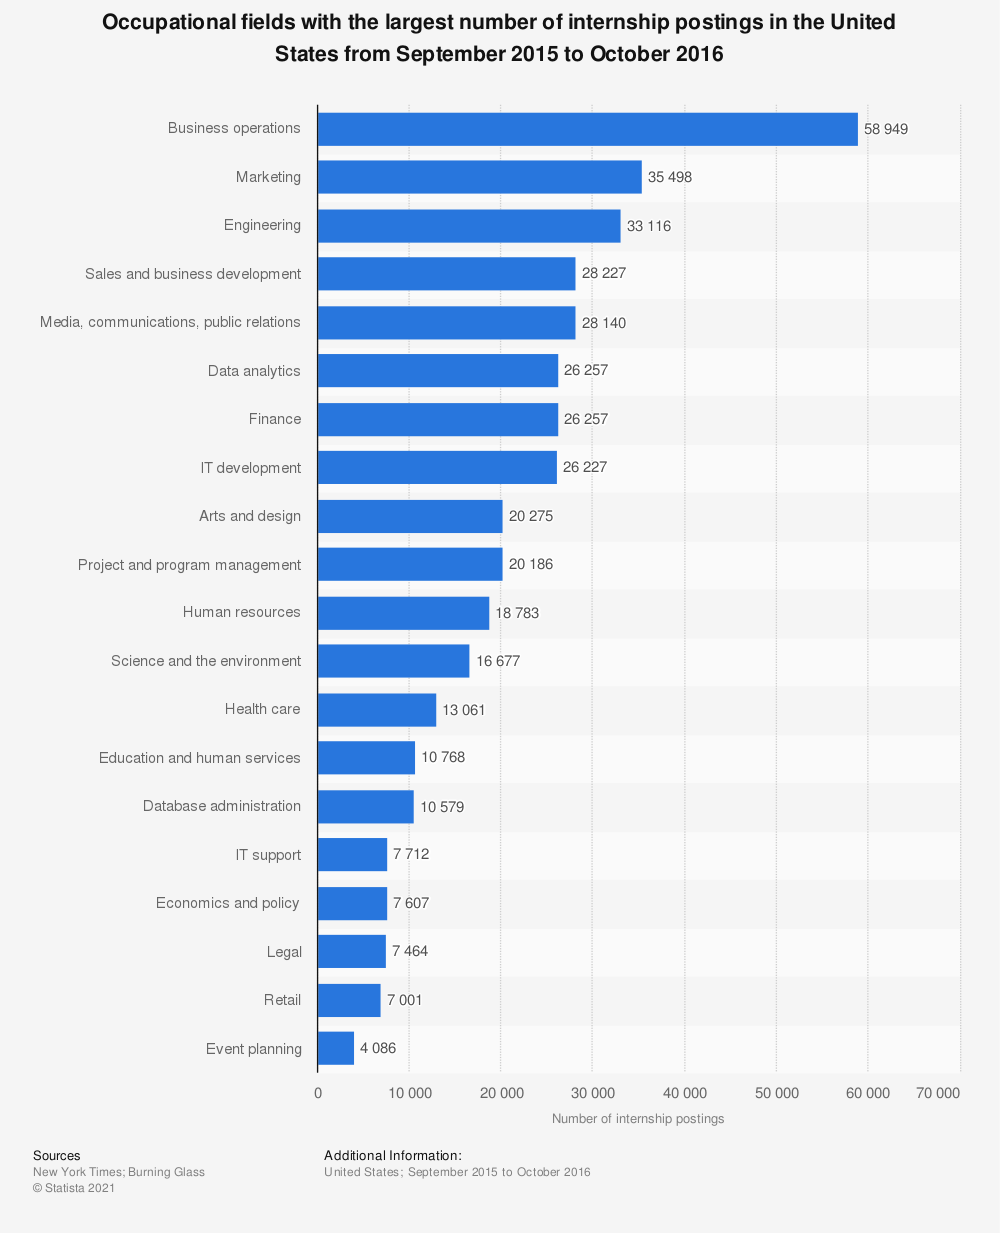 Statistic: Occupational fields with the largest number of internship postings in the United States from September 2015 to October 2016 | Statista